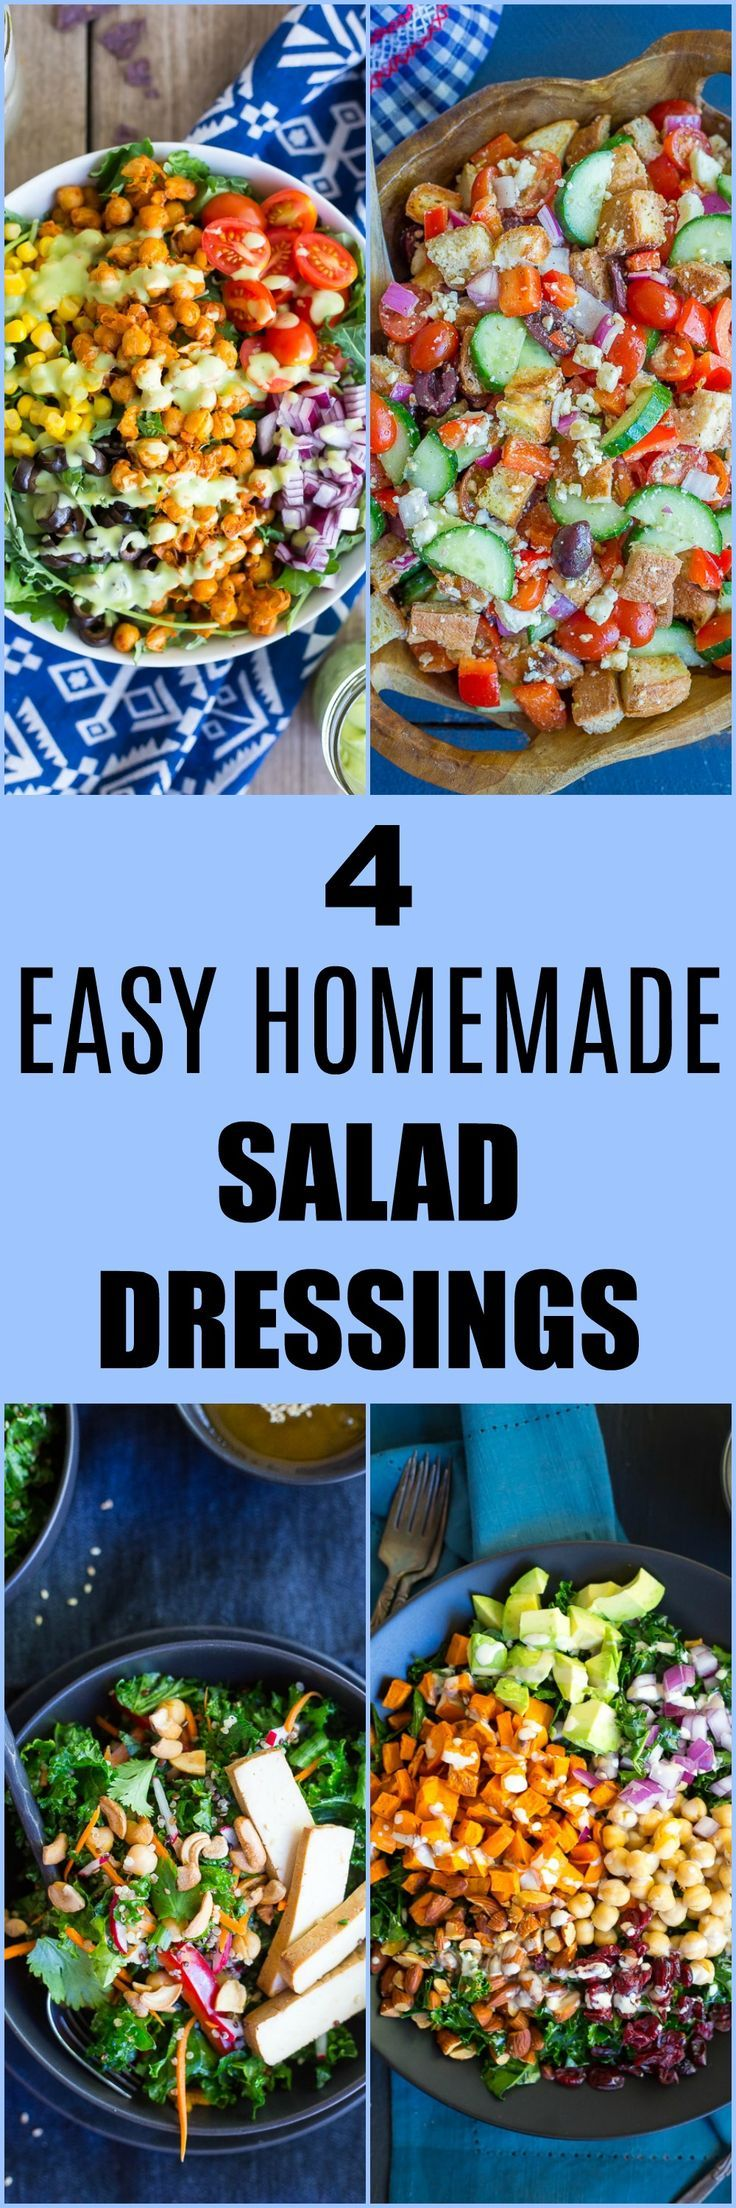 These 4 Easy Homemade Salad Dressing Recipes are much healthier than the store-bought kind!  You only need a few ingredients and they're great for salads or dips!  They're all vegan and gluten free! #condiments #glutenfree #vegan #homemade #healthy #salads